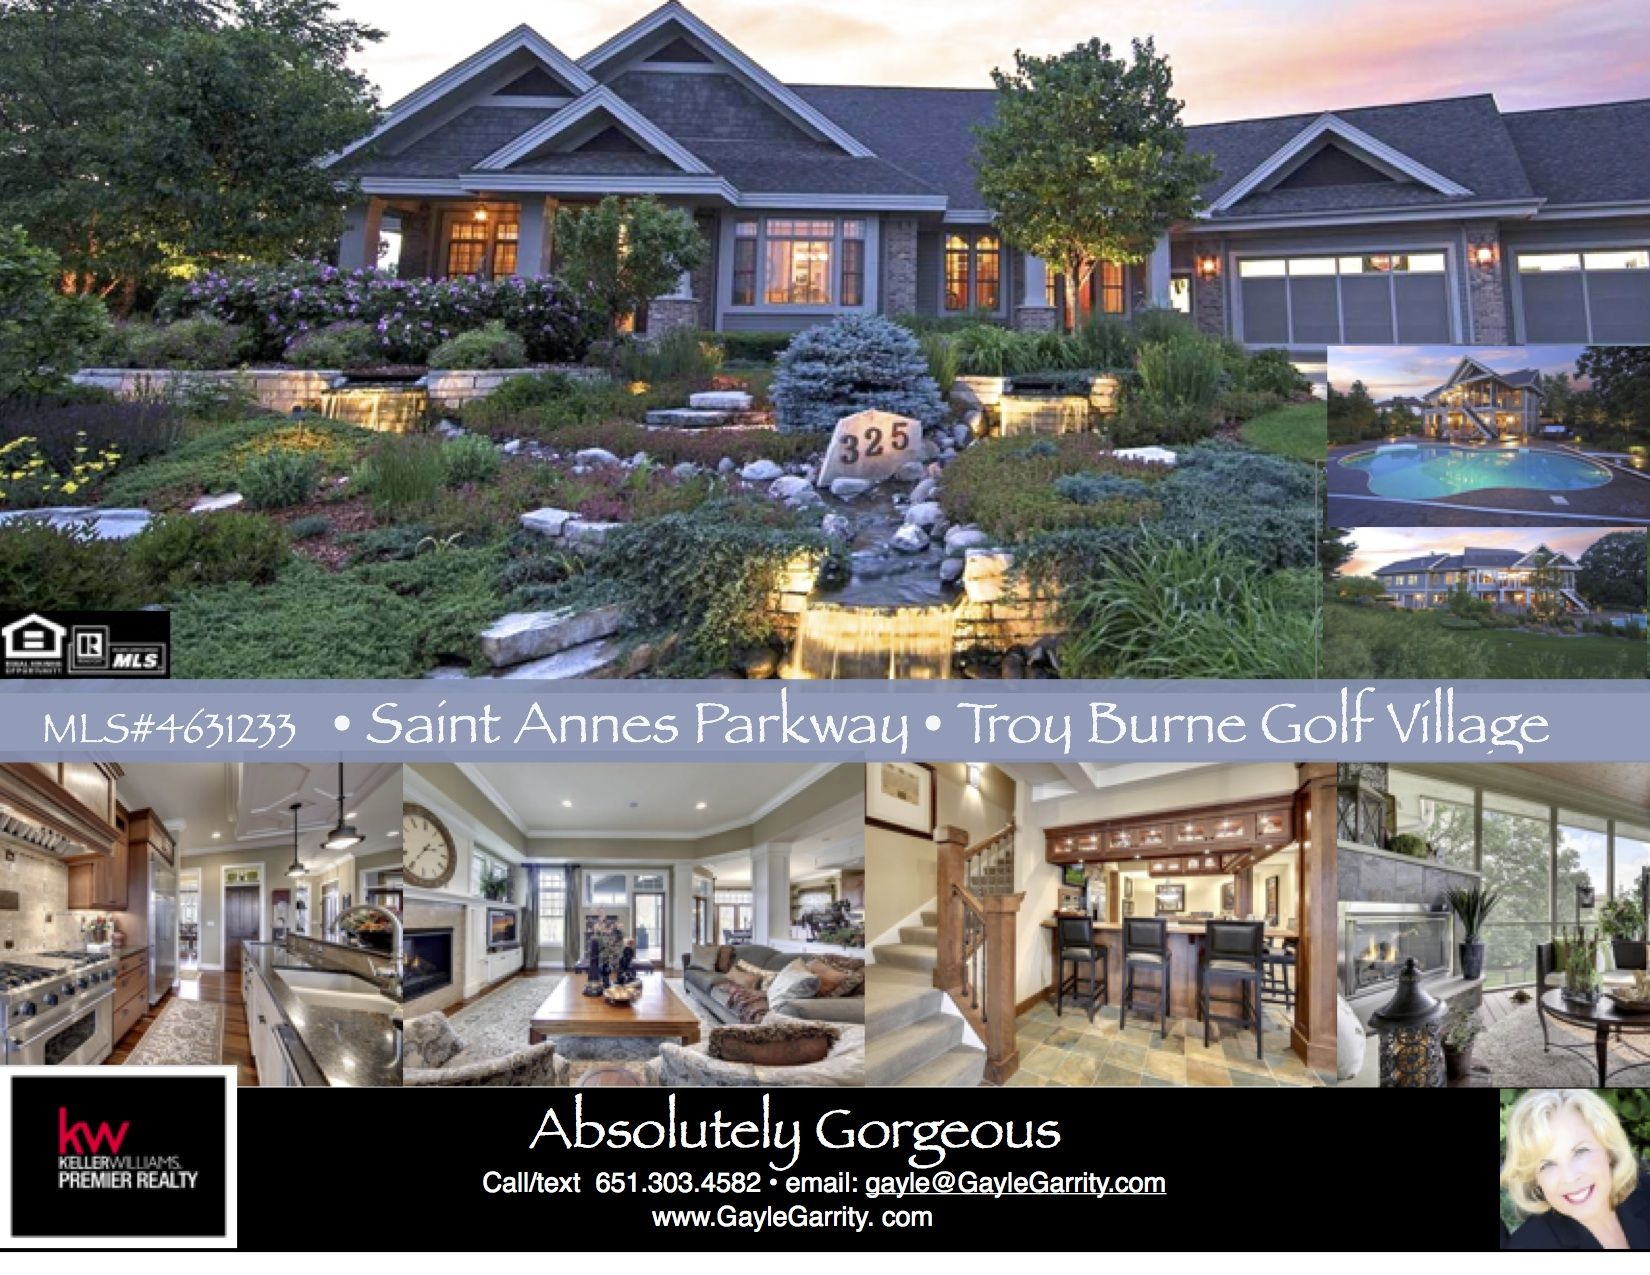 A Home For The Holidays!  It may not be too late for you to have this gorgeous home for the holidays. Call for your showing appointment today.